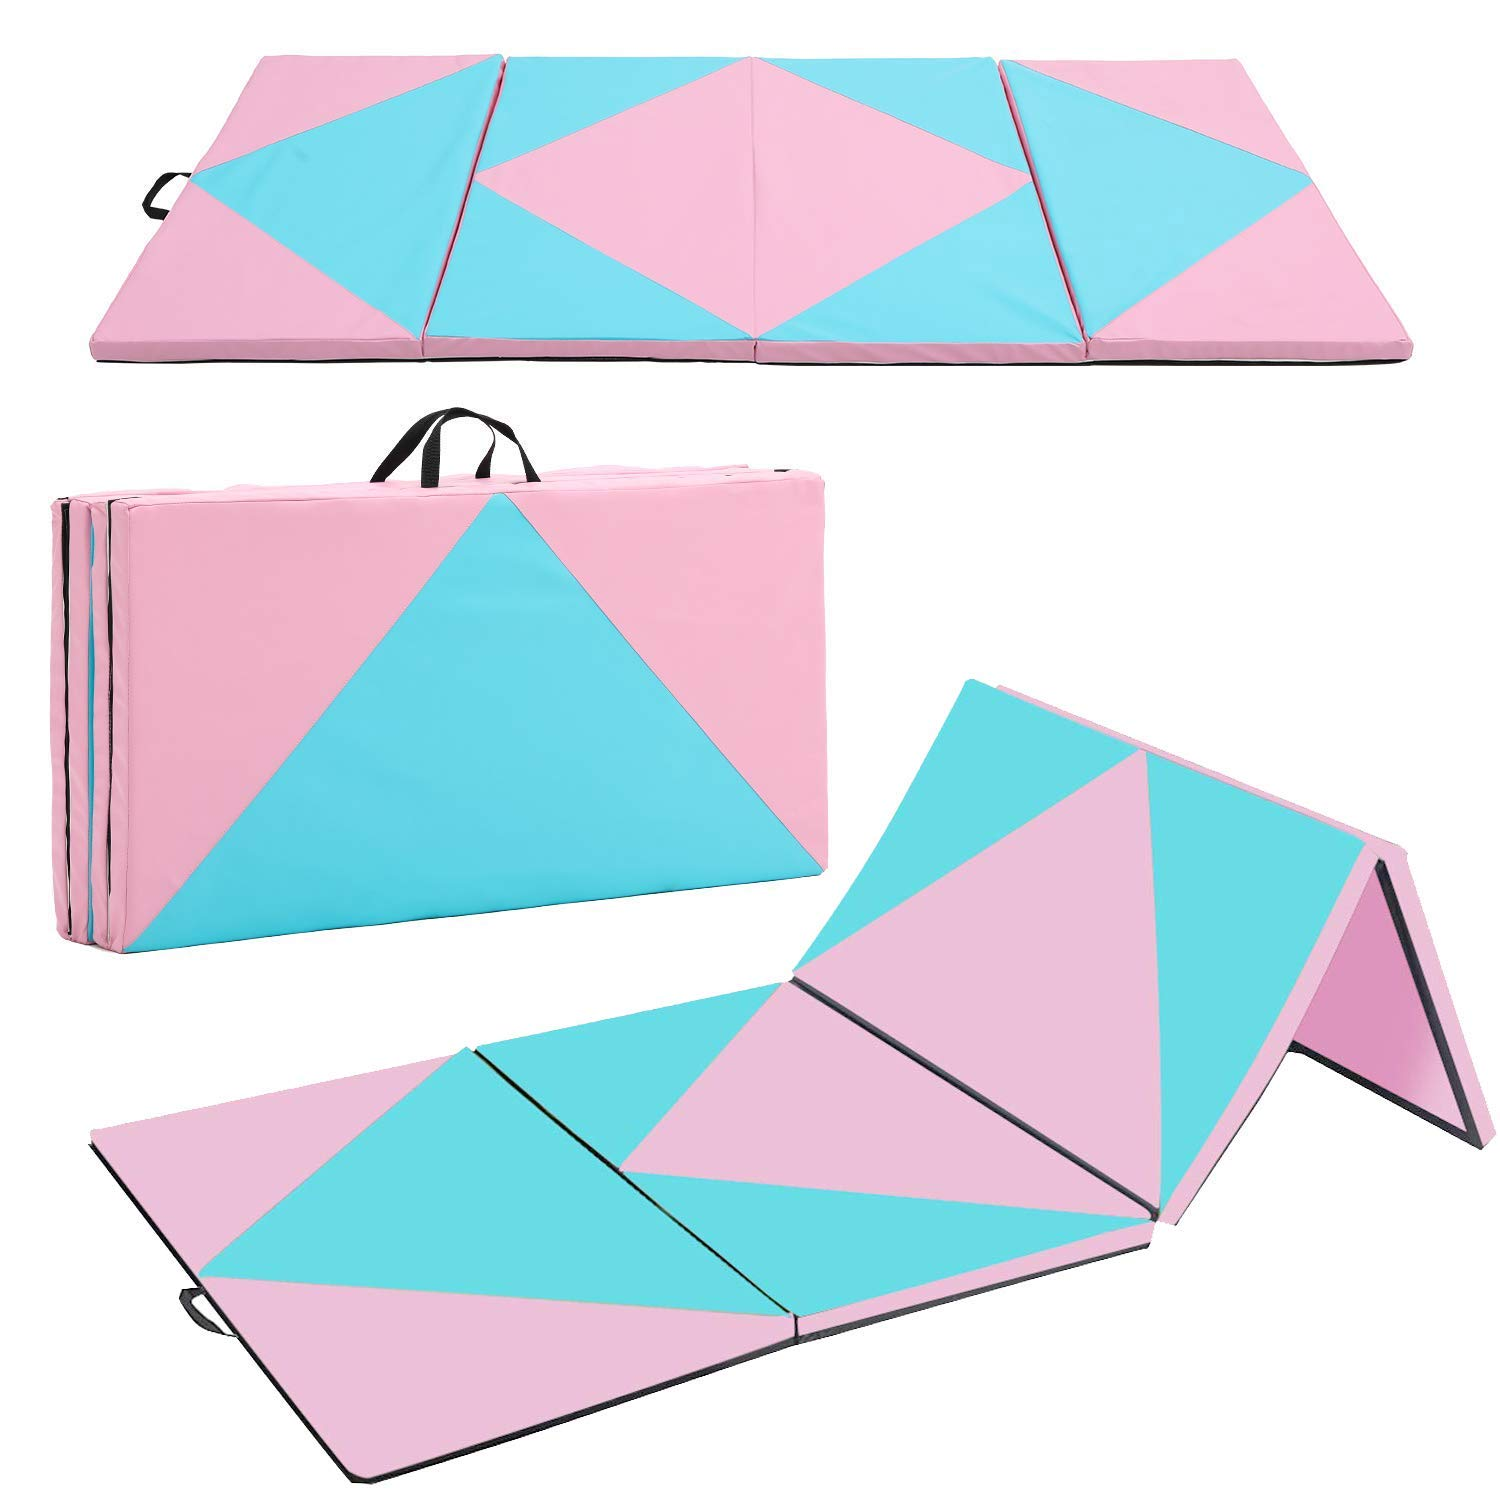 Outroad Gymnastics Mat Thick Folding with Carrying Handles Exercise Mat Training Bar Adjustable Height Gym Exercise Aerobics Mats Stretching Fitness